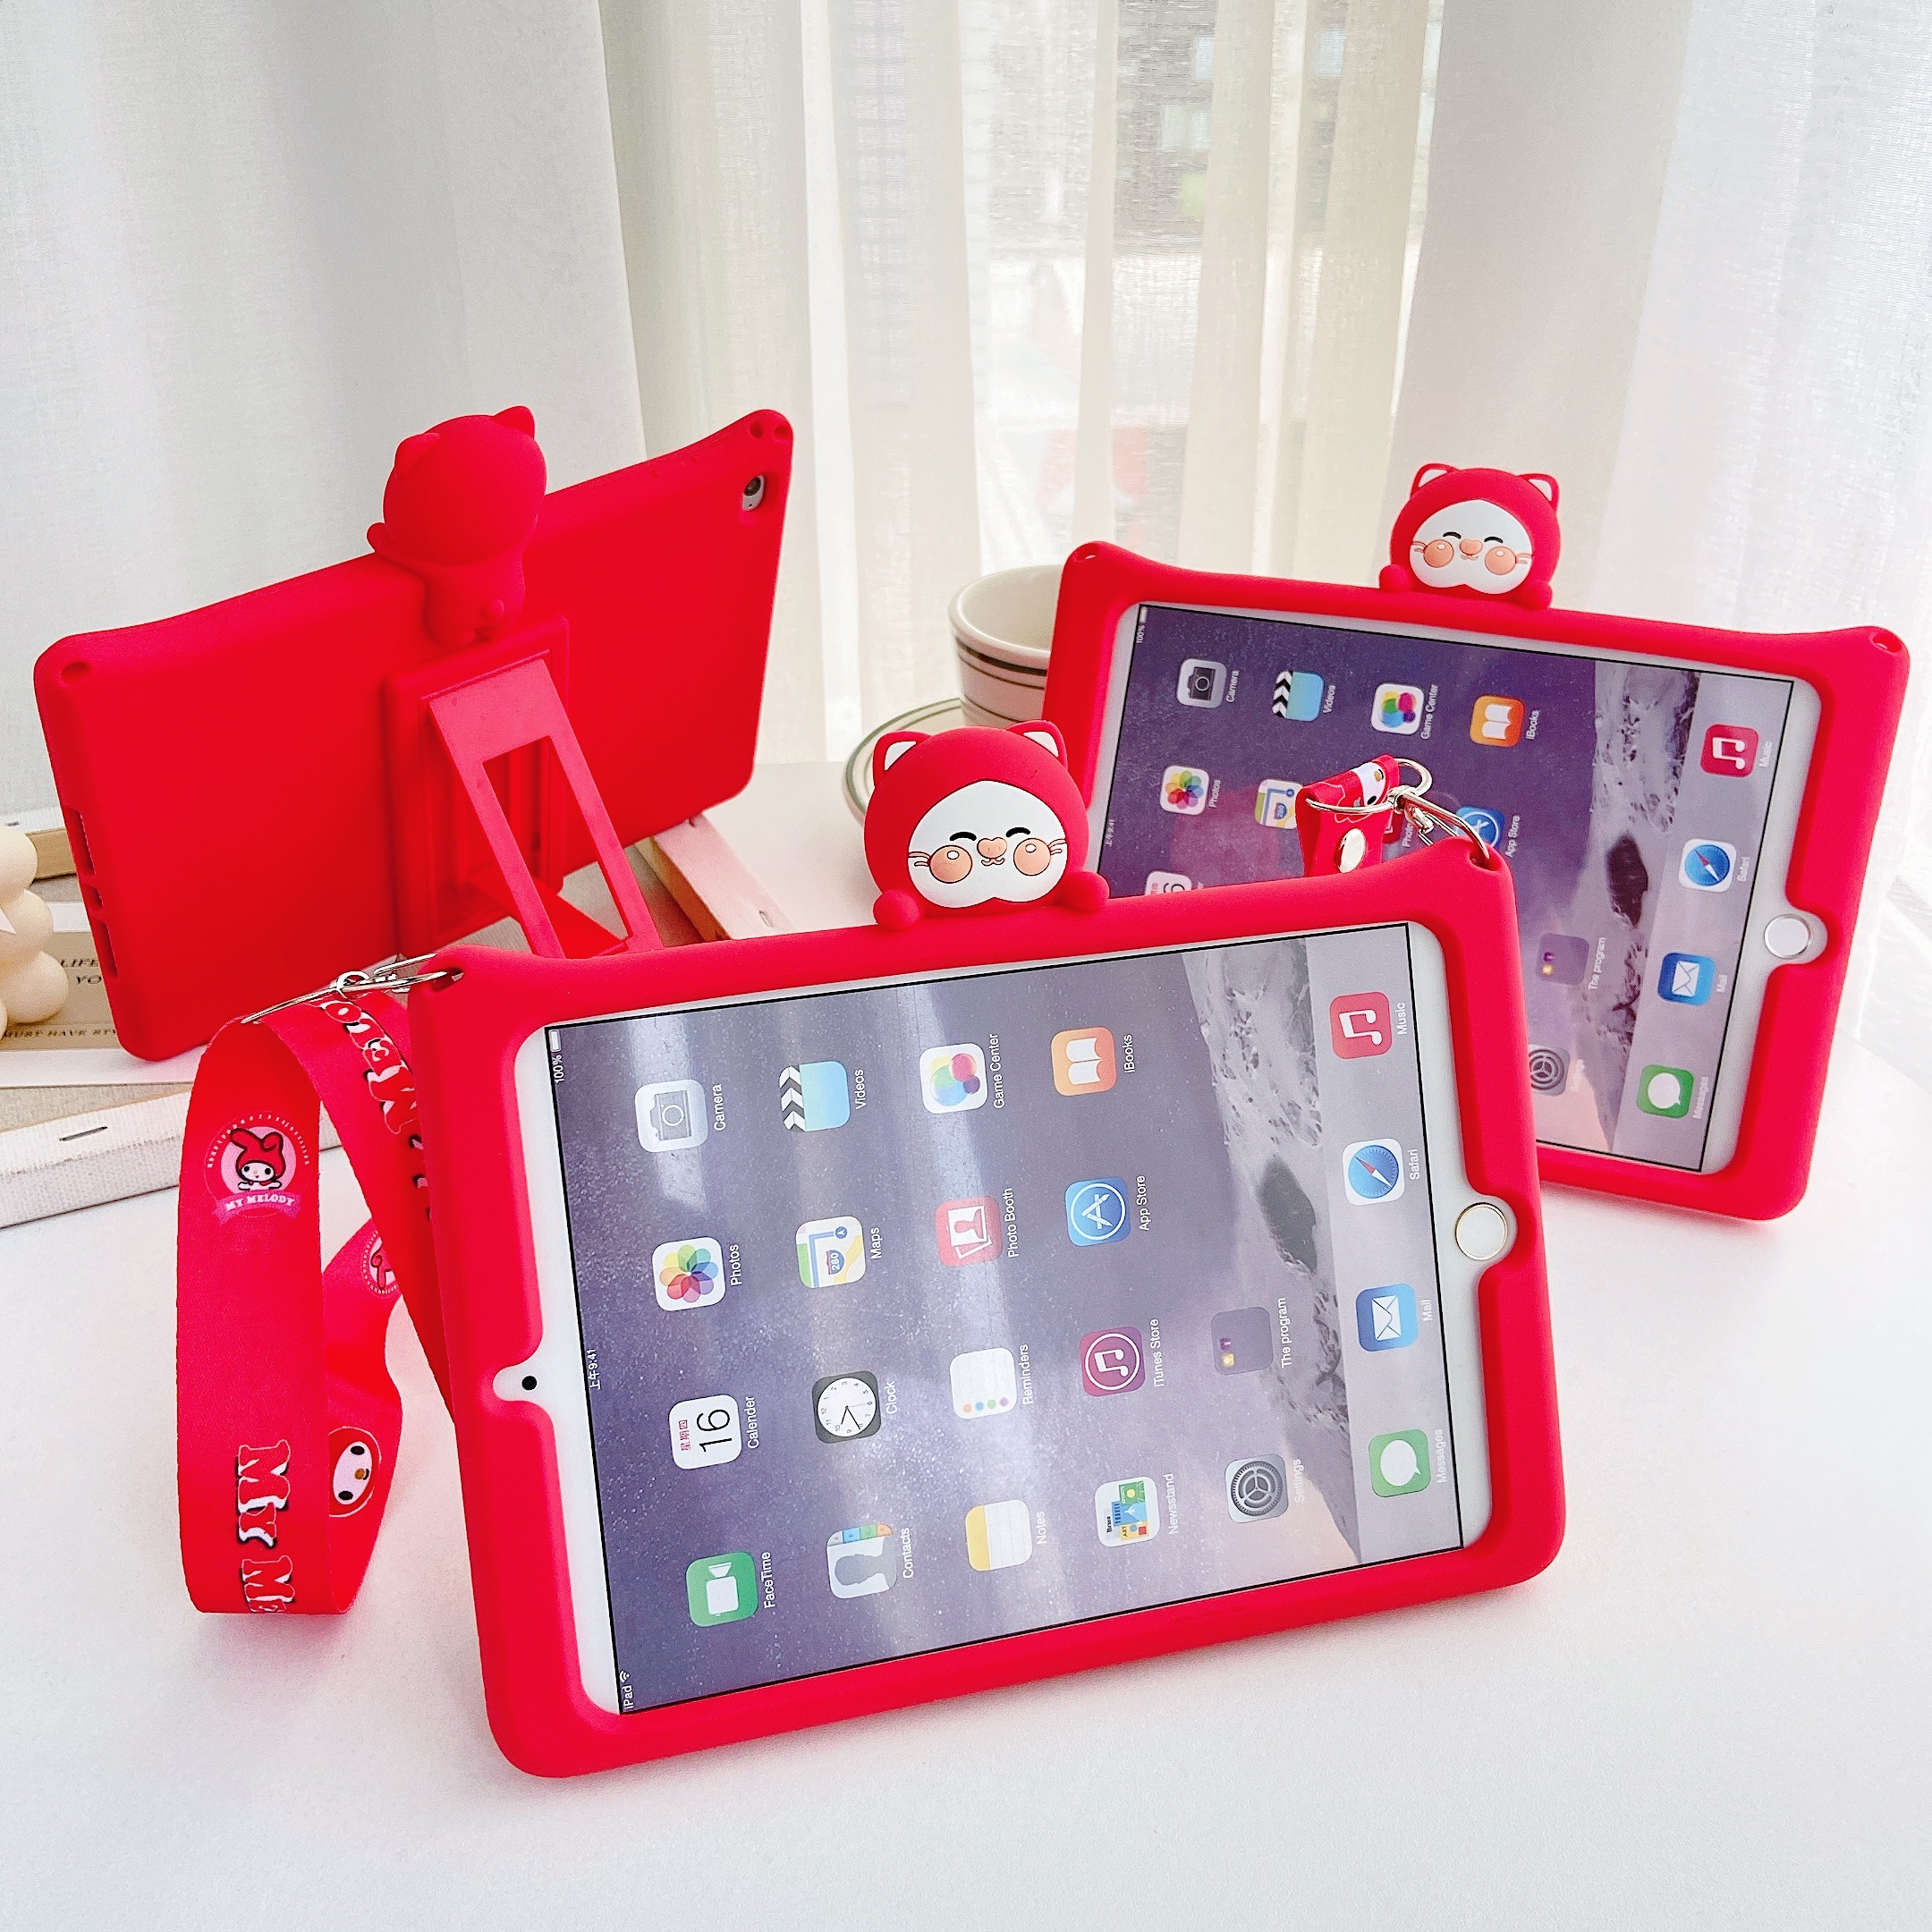 Case For <font><b>iPad</b></font> <font><b>9.7</b></font> <font><b>2017</b></font> 2018 5th 6th 7th 10.2 <font><b>Pro</b></font> <font><b>9.7</b></font> 10.5 11 Air Cartoon Kids Cover For Mini 1 2 3 4 5 Silicon Funda + strap image